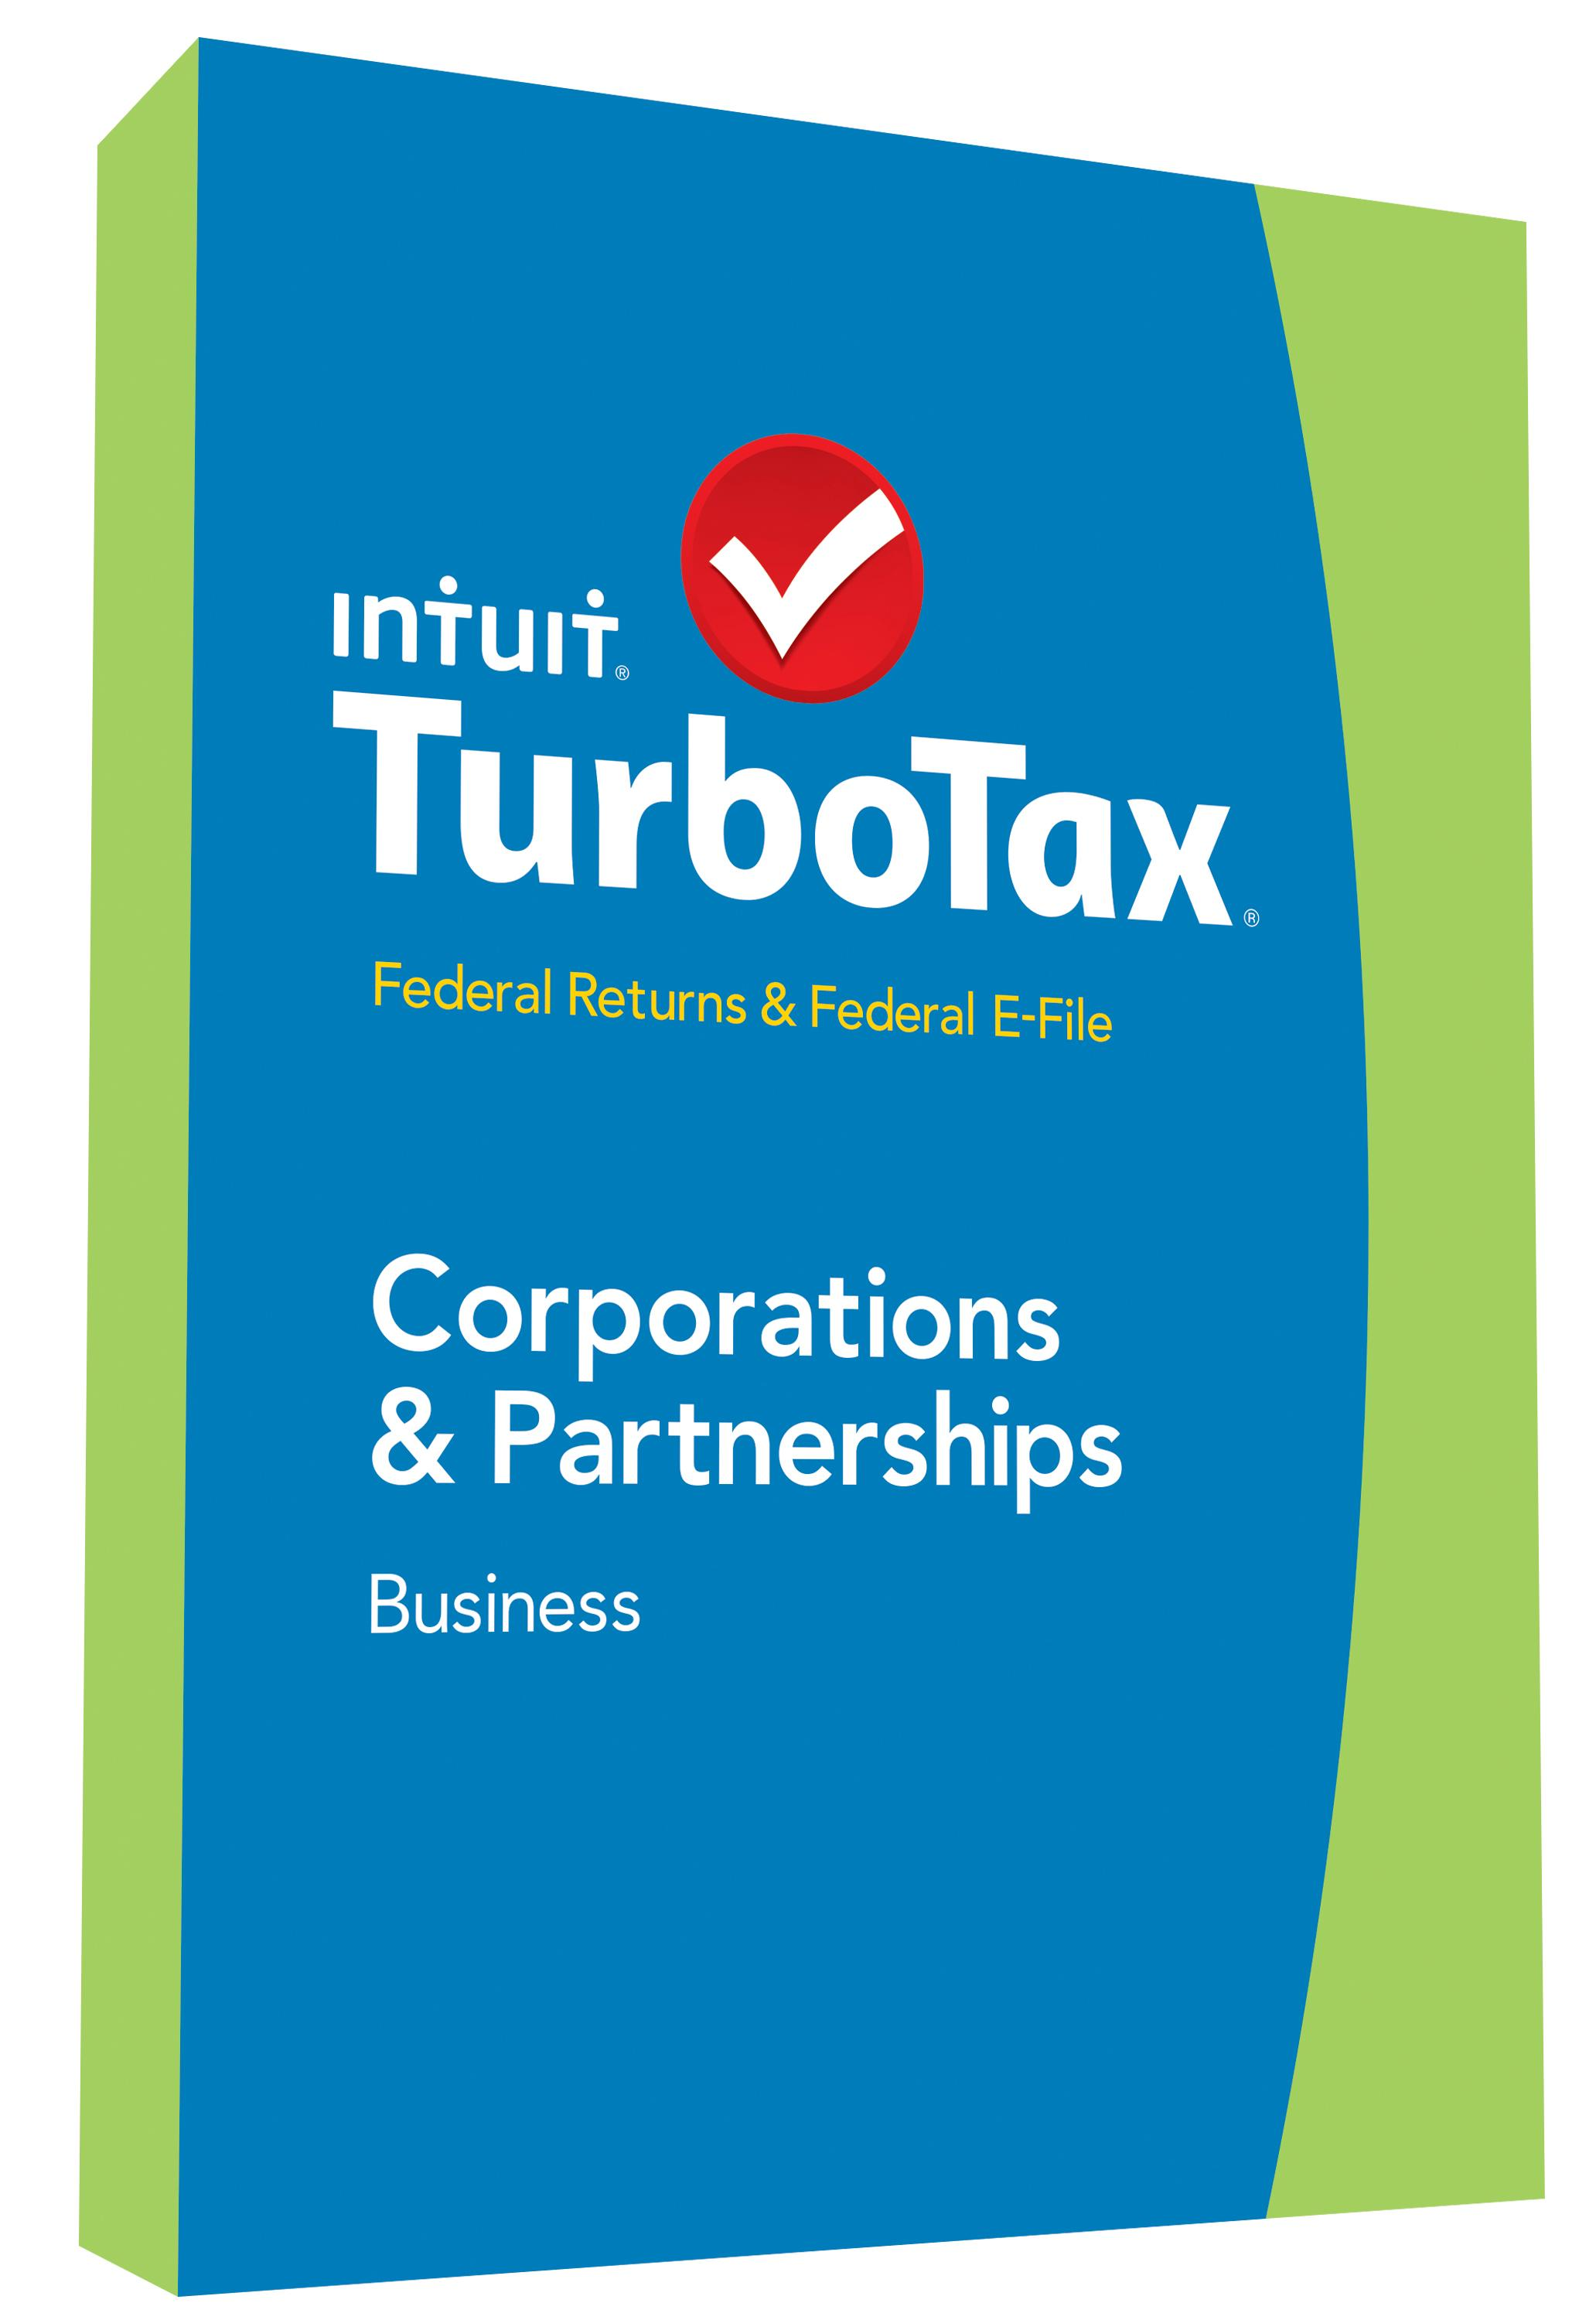 Turbotax Form 1041 Software